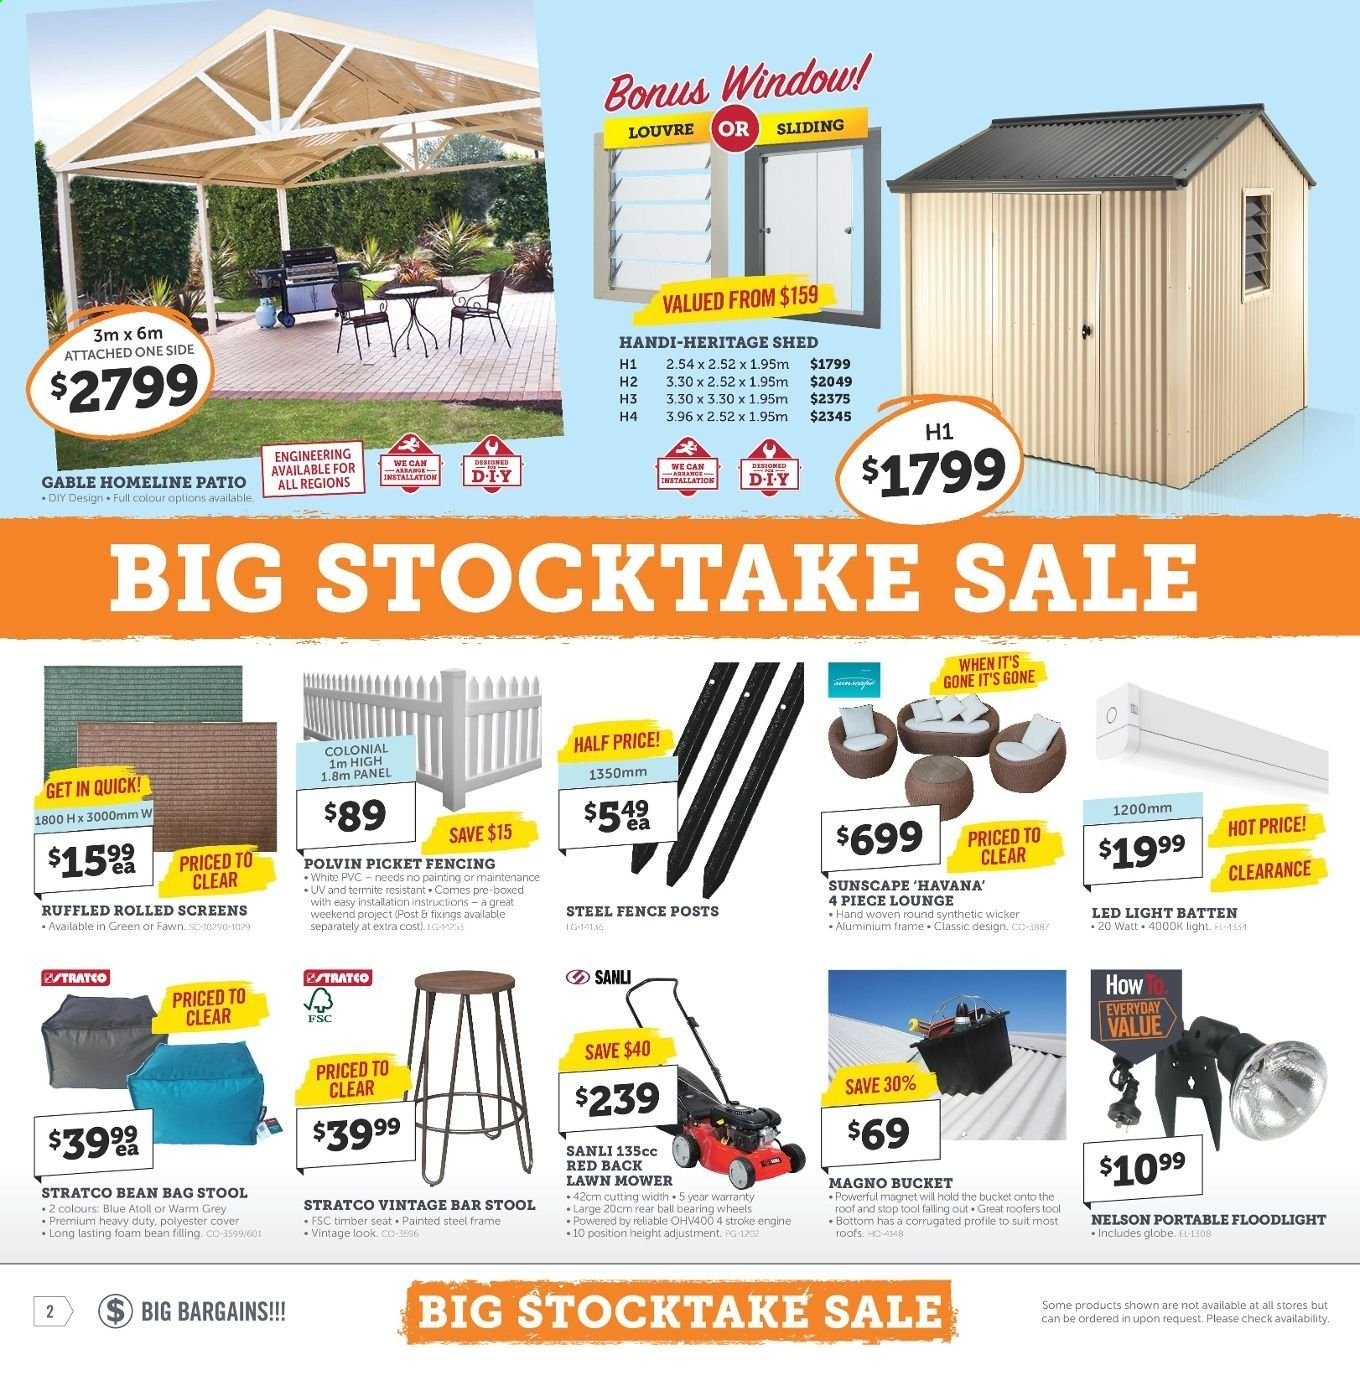 Stratco catalogue and weekly specials 31 5 2019 - 16 6 2019 | Au